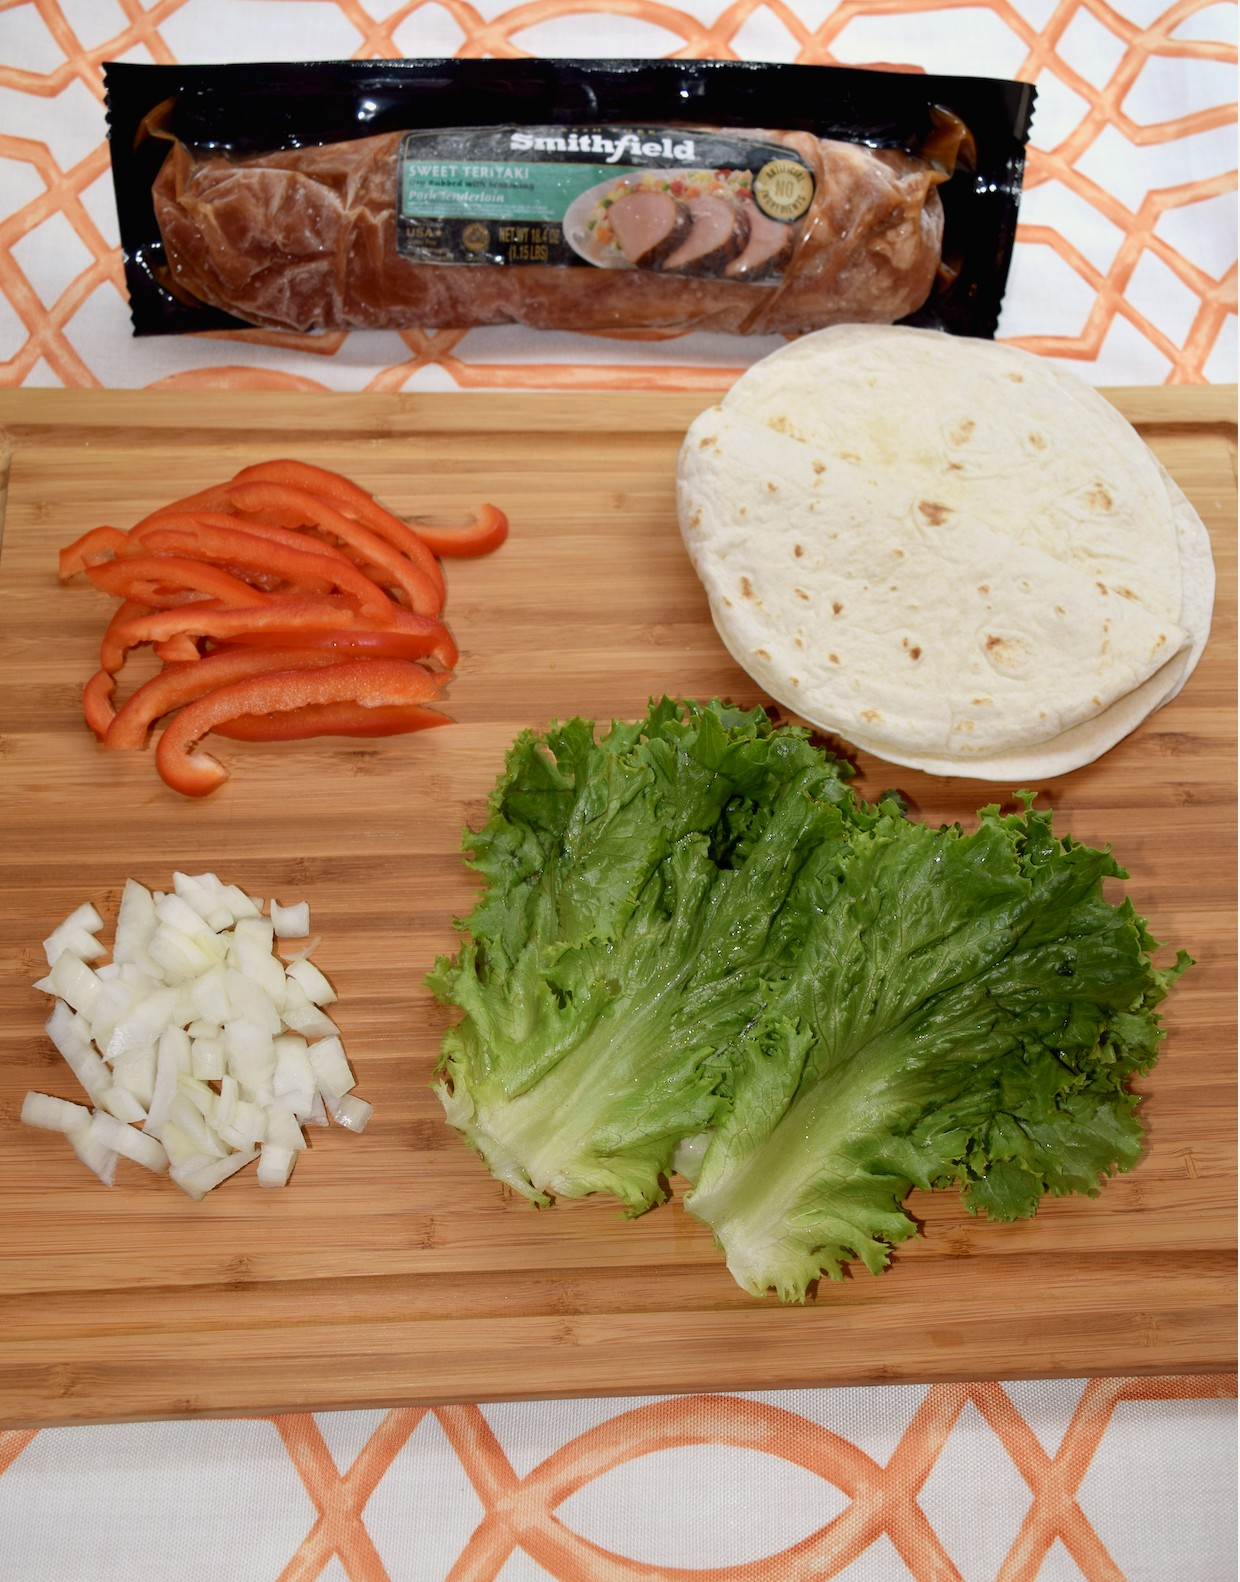 Get your recipe for delicious Sweet Teriyaki Pork Fajitas that takes only 30 minutes or less to make from start to finish!